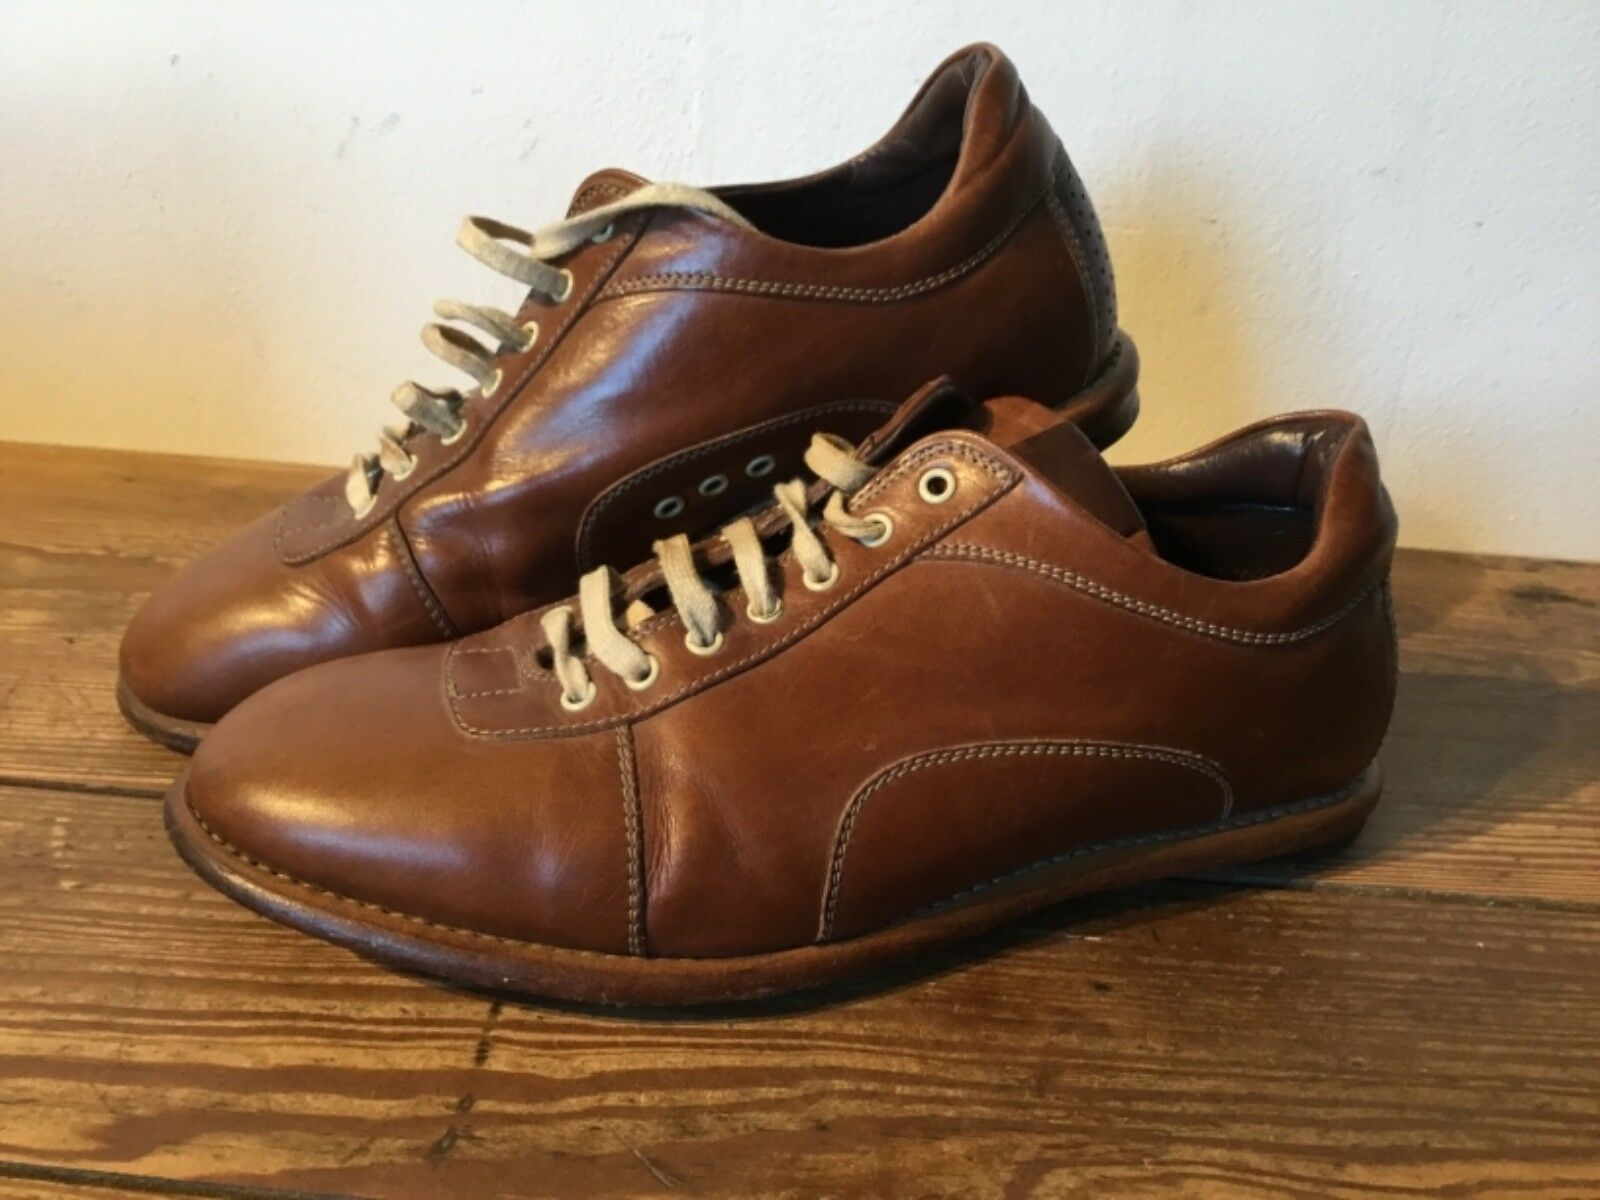 Heschung  design shoes , SIZE 37.5   brown leater derbies